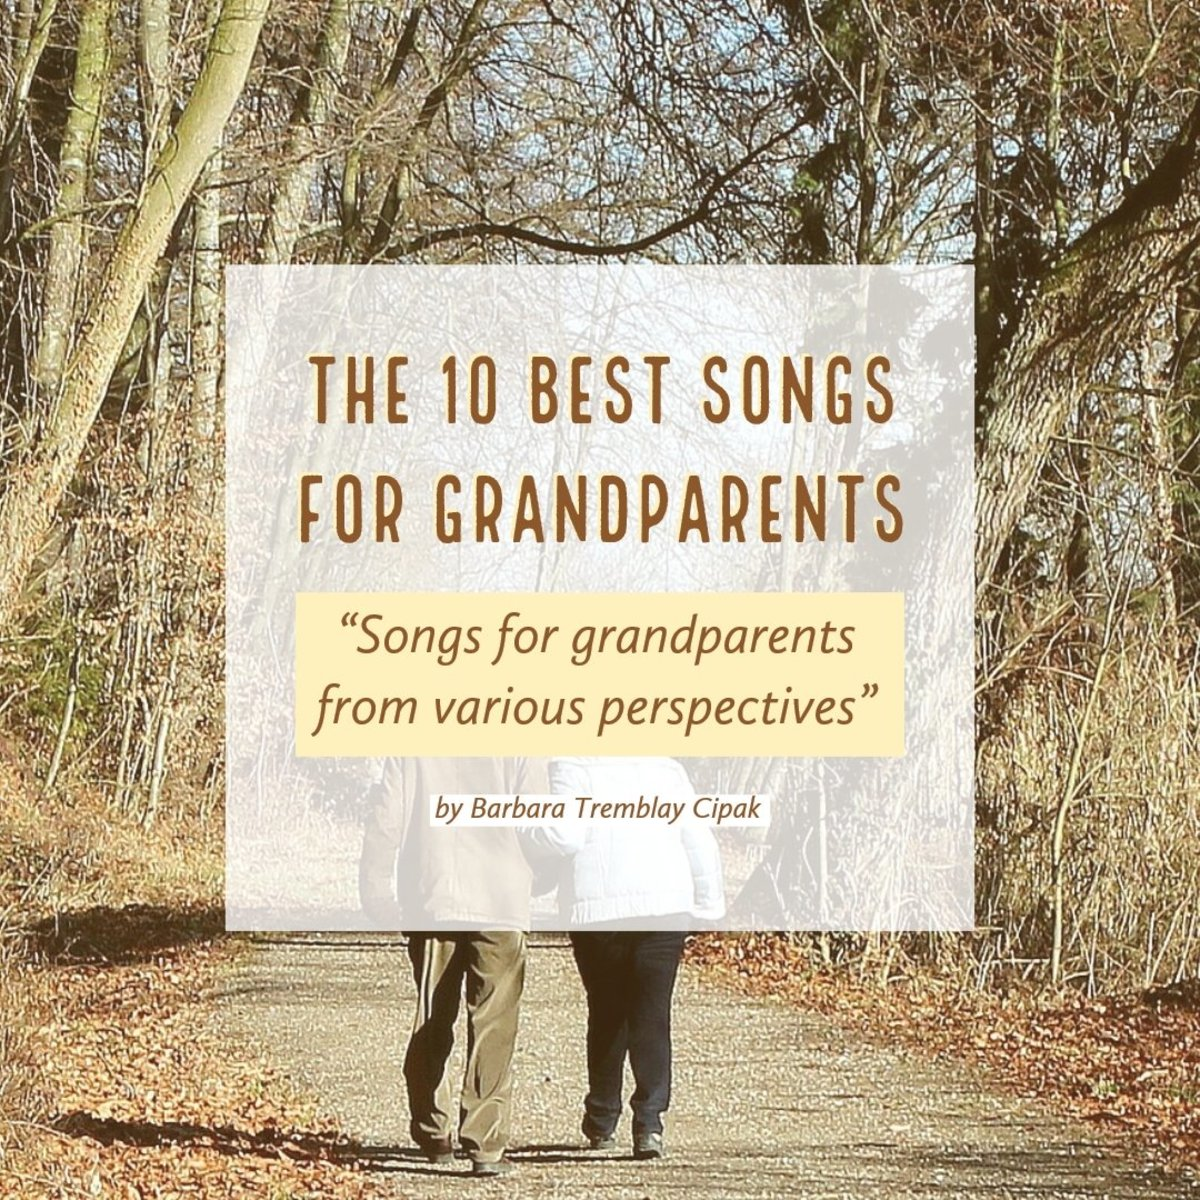 The 10 Best Songs for Grandparents